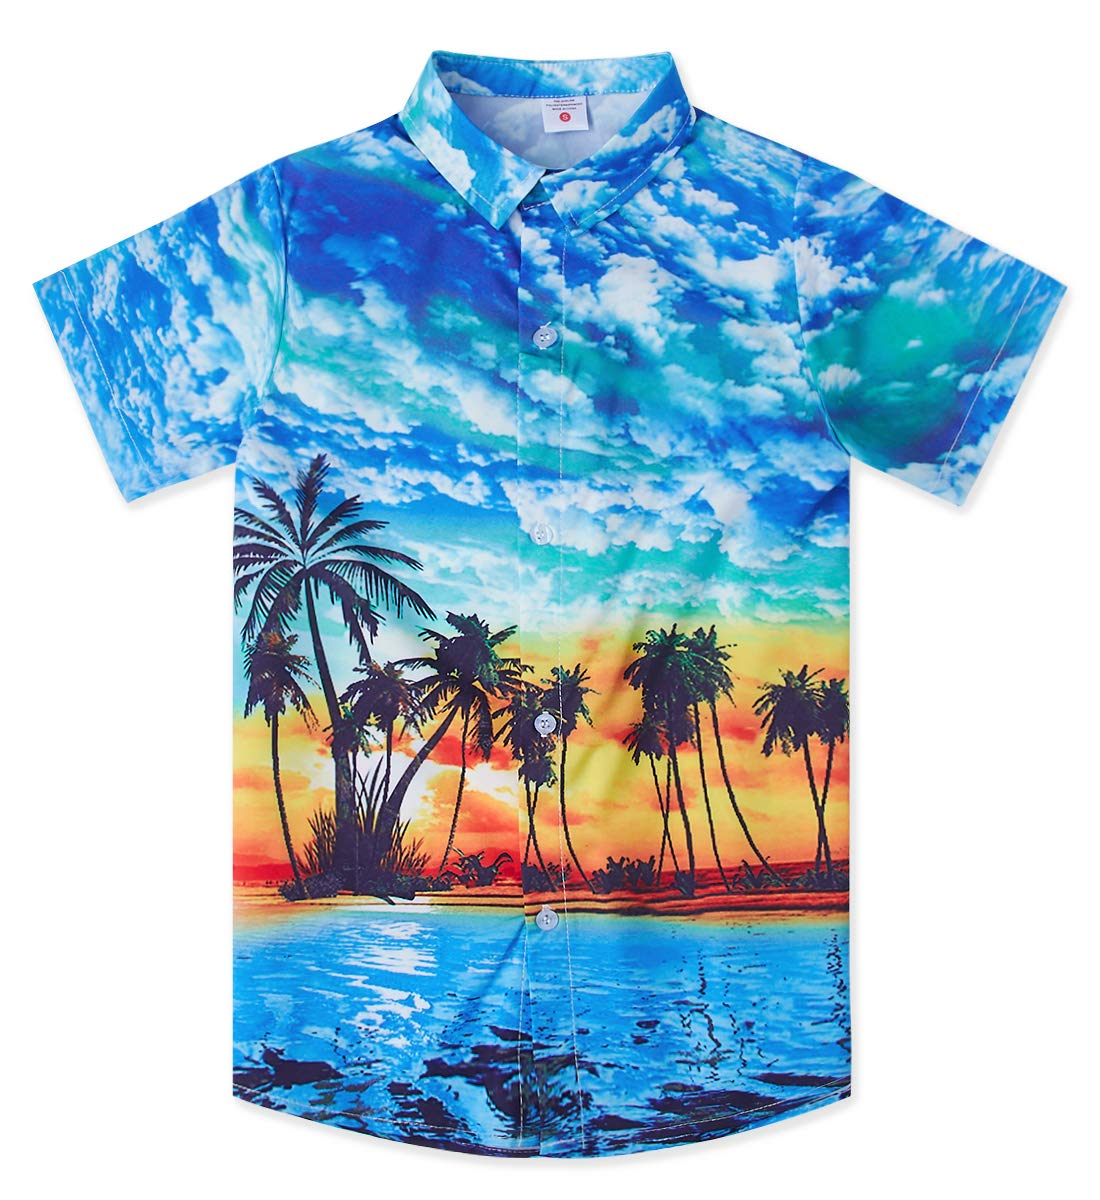 Coconut Palm Dress Shirts for 13th 14th 15th Years Old Juniors Boy 3D Printed Cool Blue Green Short Sleeves Button Down Hawaii Luau Tops Blouse Teen Bro Beach School Casual Party Athletic Tee Shirt